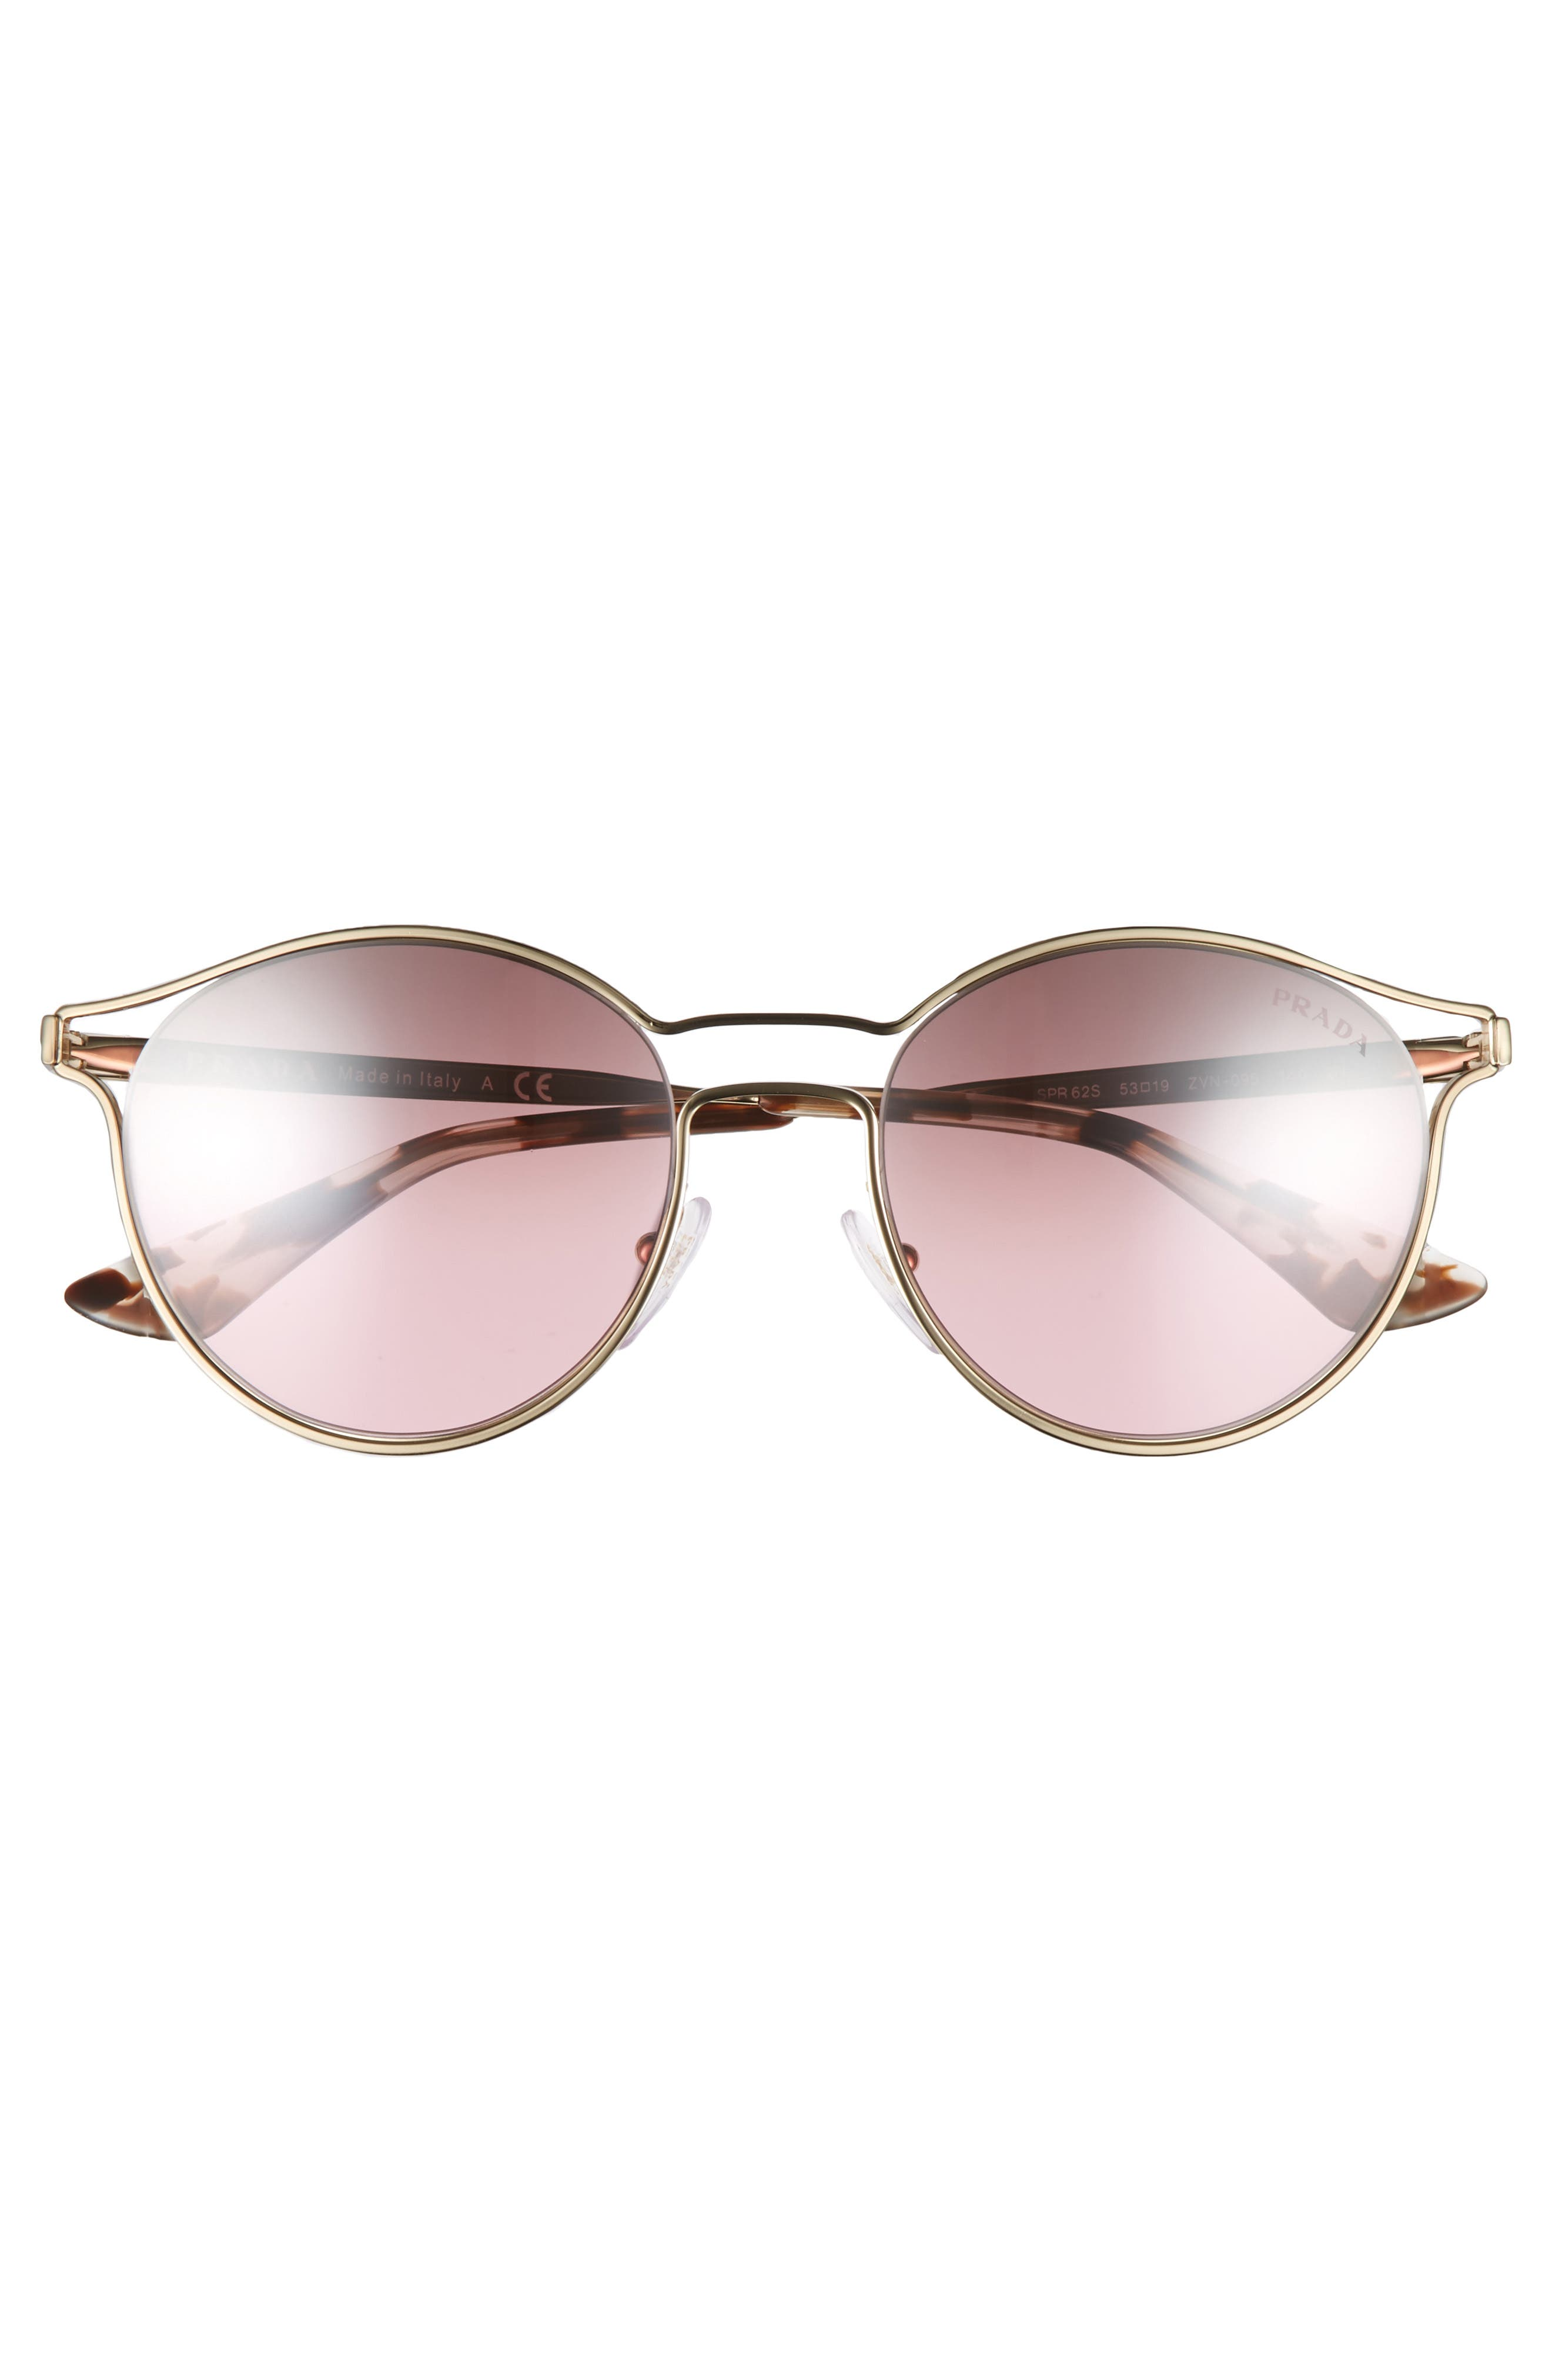 53mm Round Mirrored Sunglasses,                             Alternate thumbnail 3, color,                             Pale Gold